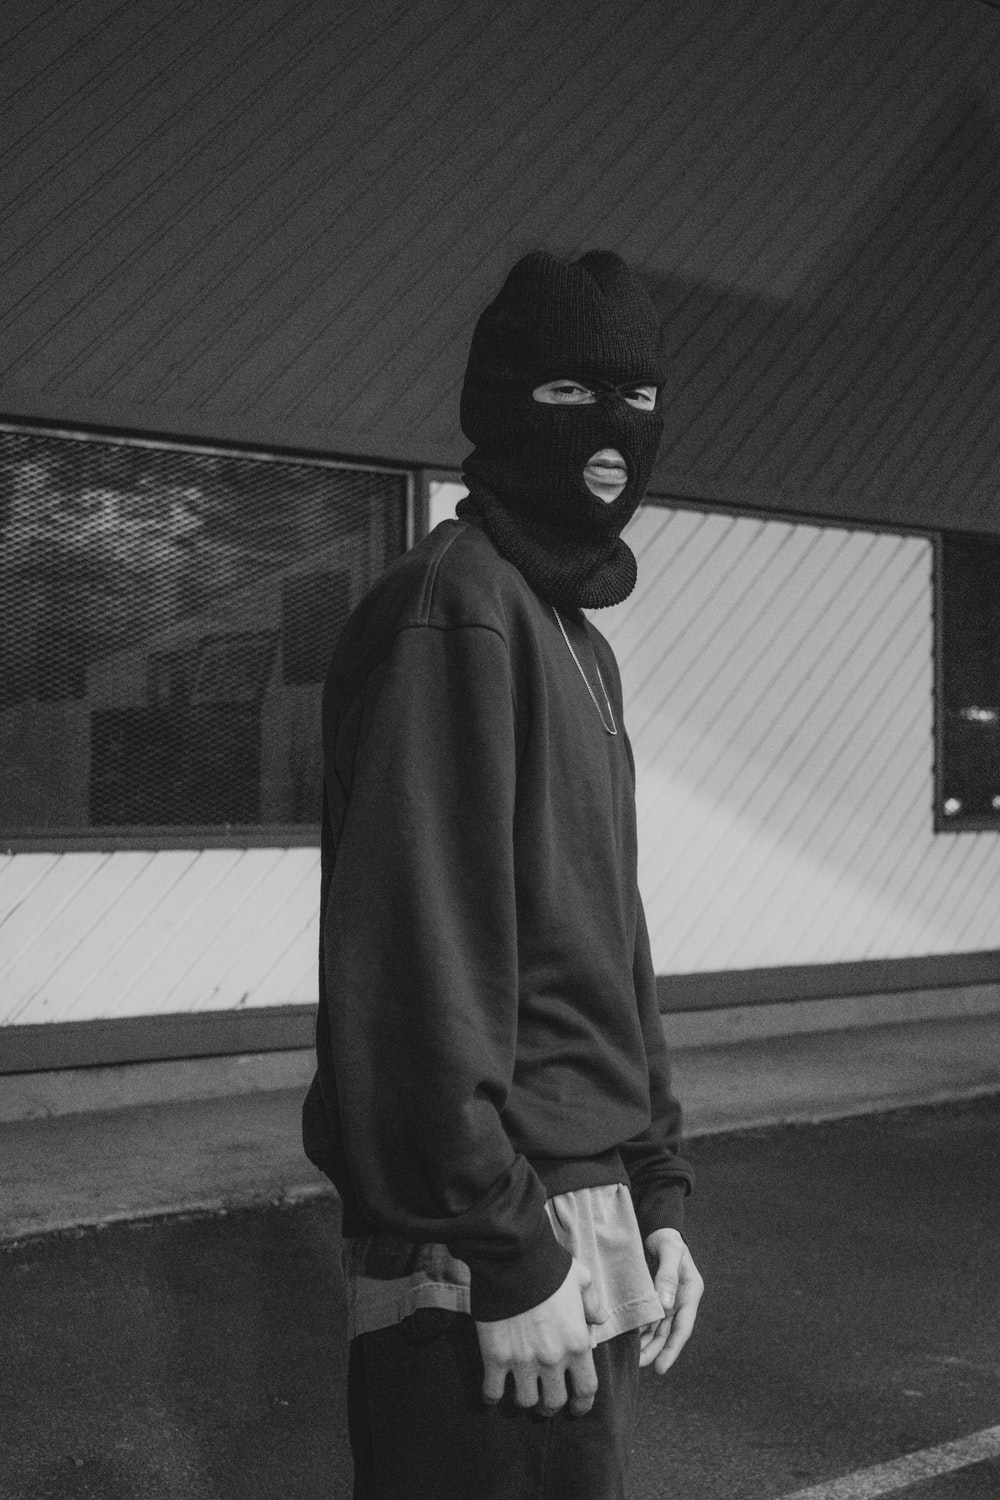 person in black mask and gray coat